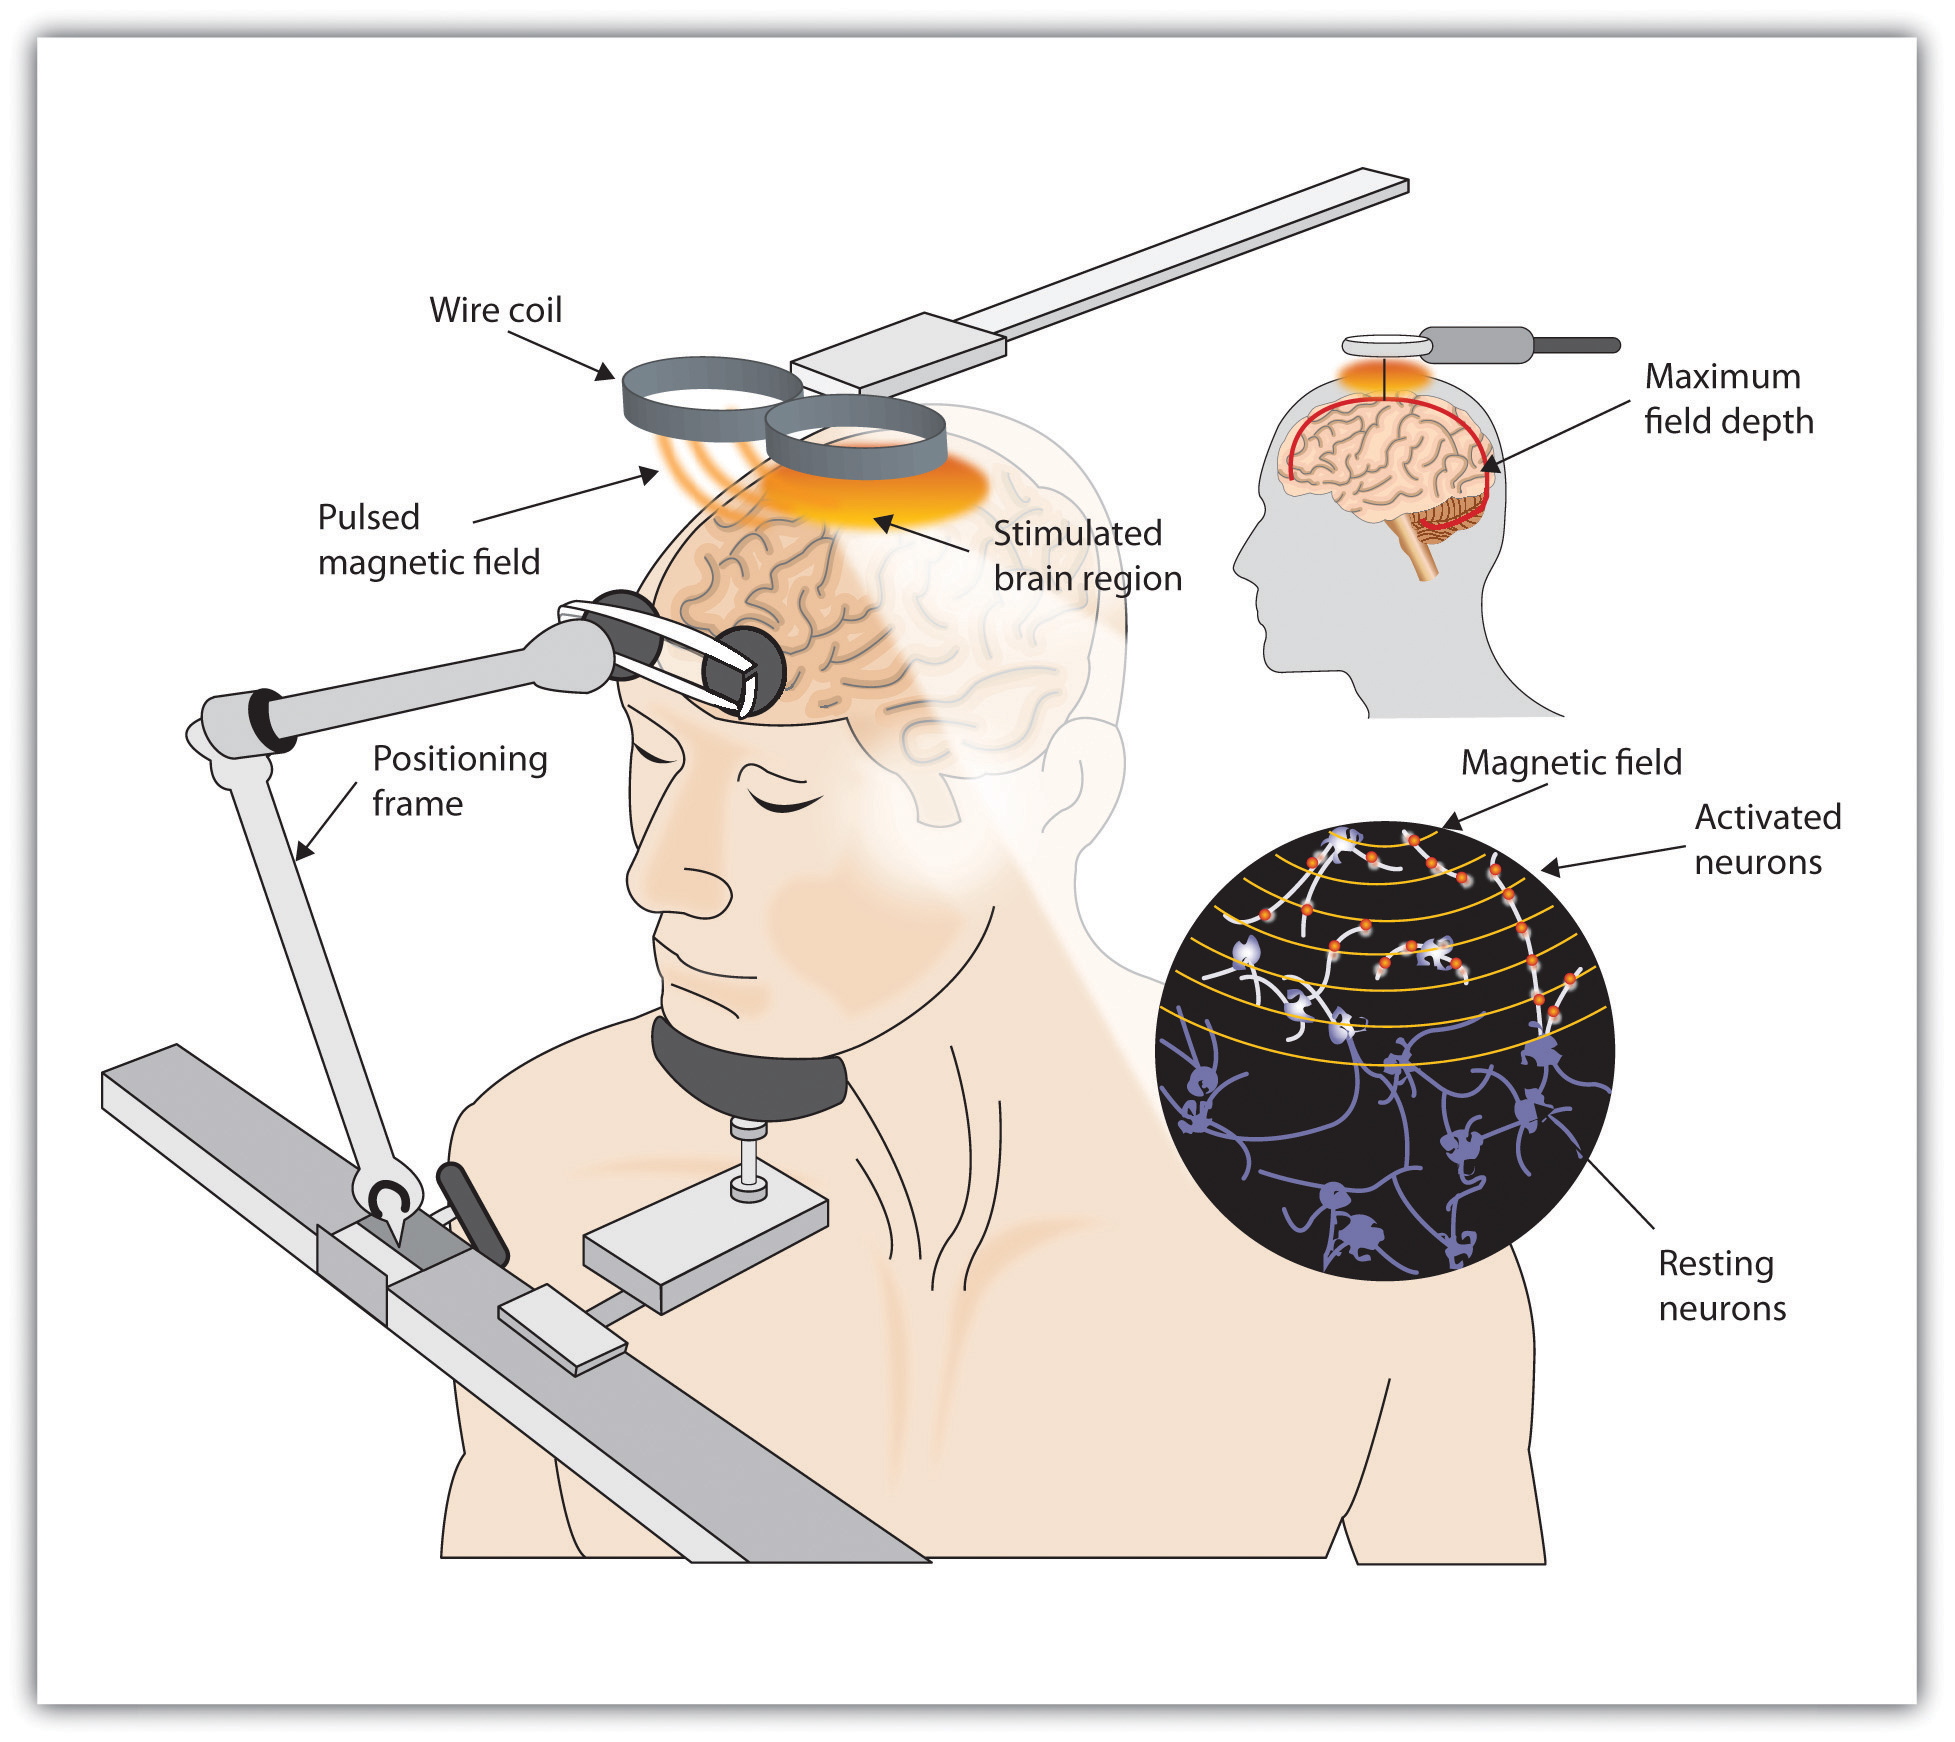 improving human intelligence by non invasive brain Alterego seeks to augment human intelligence and make  in the category of non-invasive brain computer  improving the neural networks that recognize.